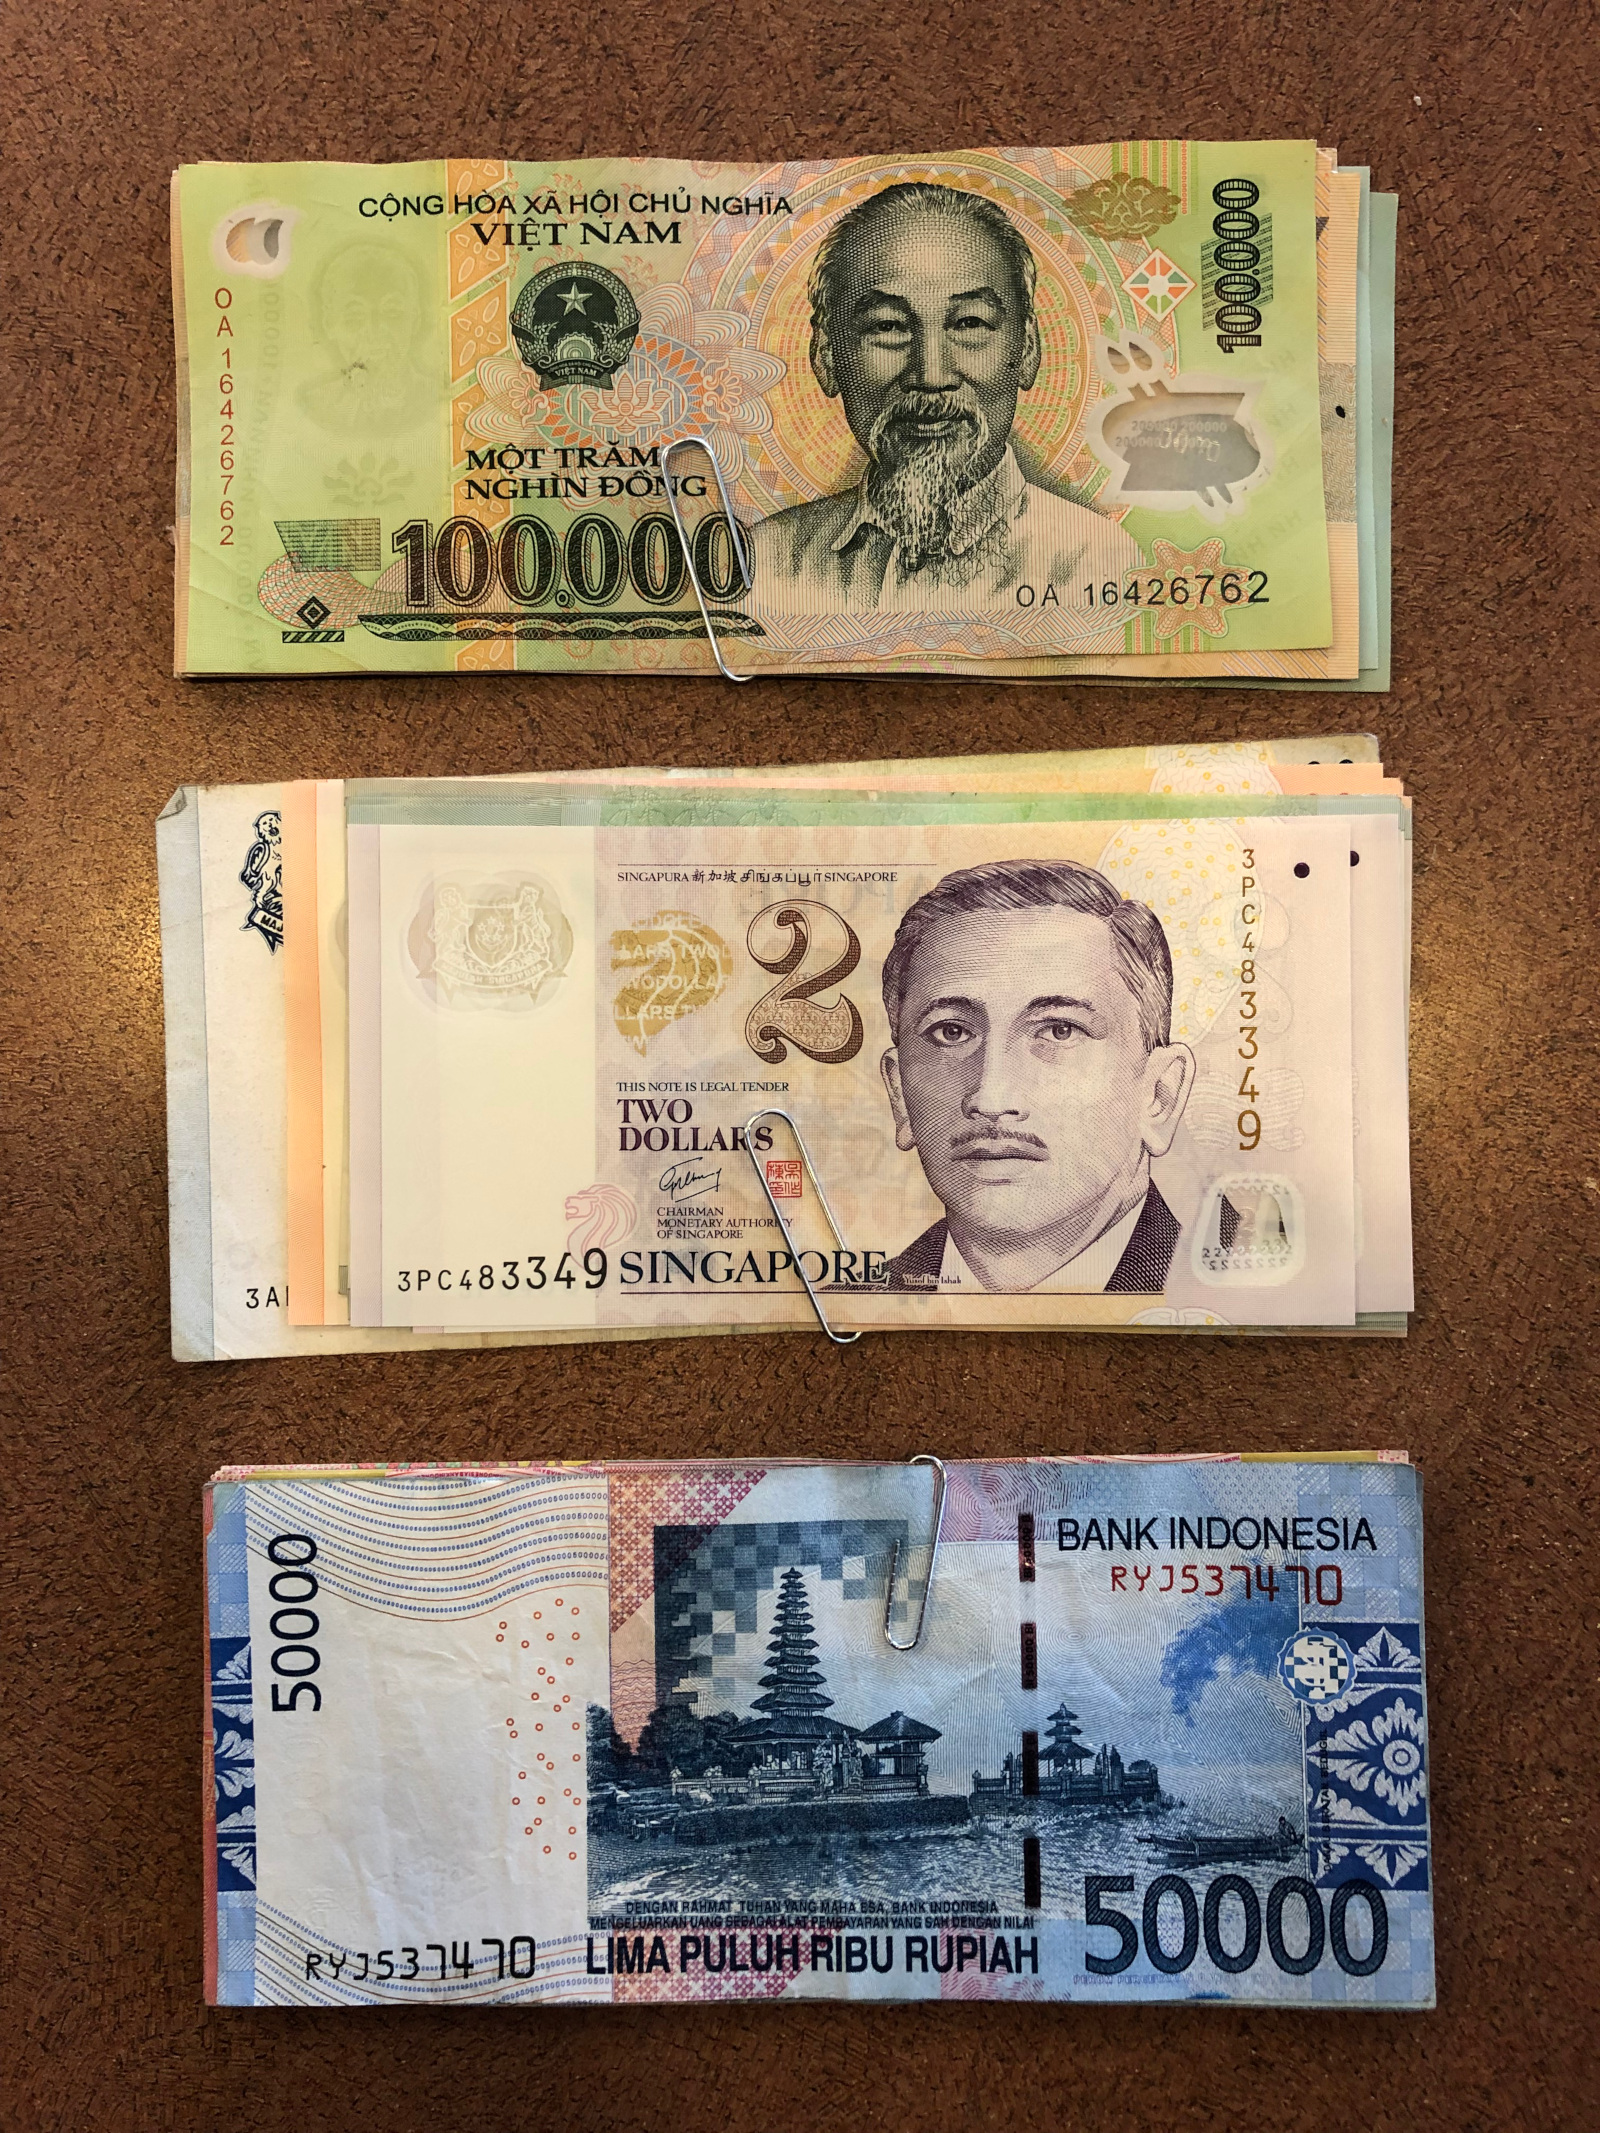 Best Ways for Withdrawing Cash Abroad | Foreign Currency